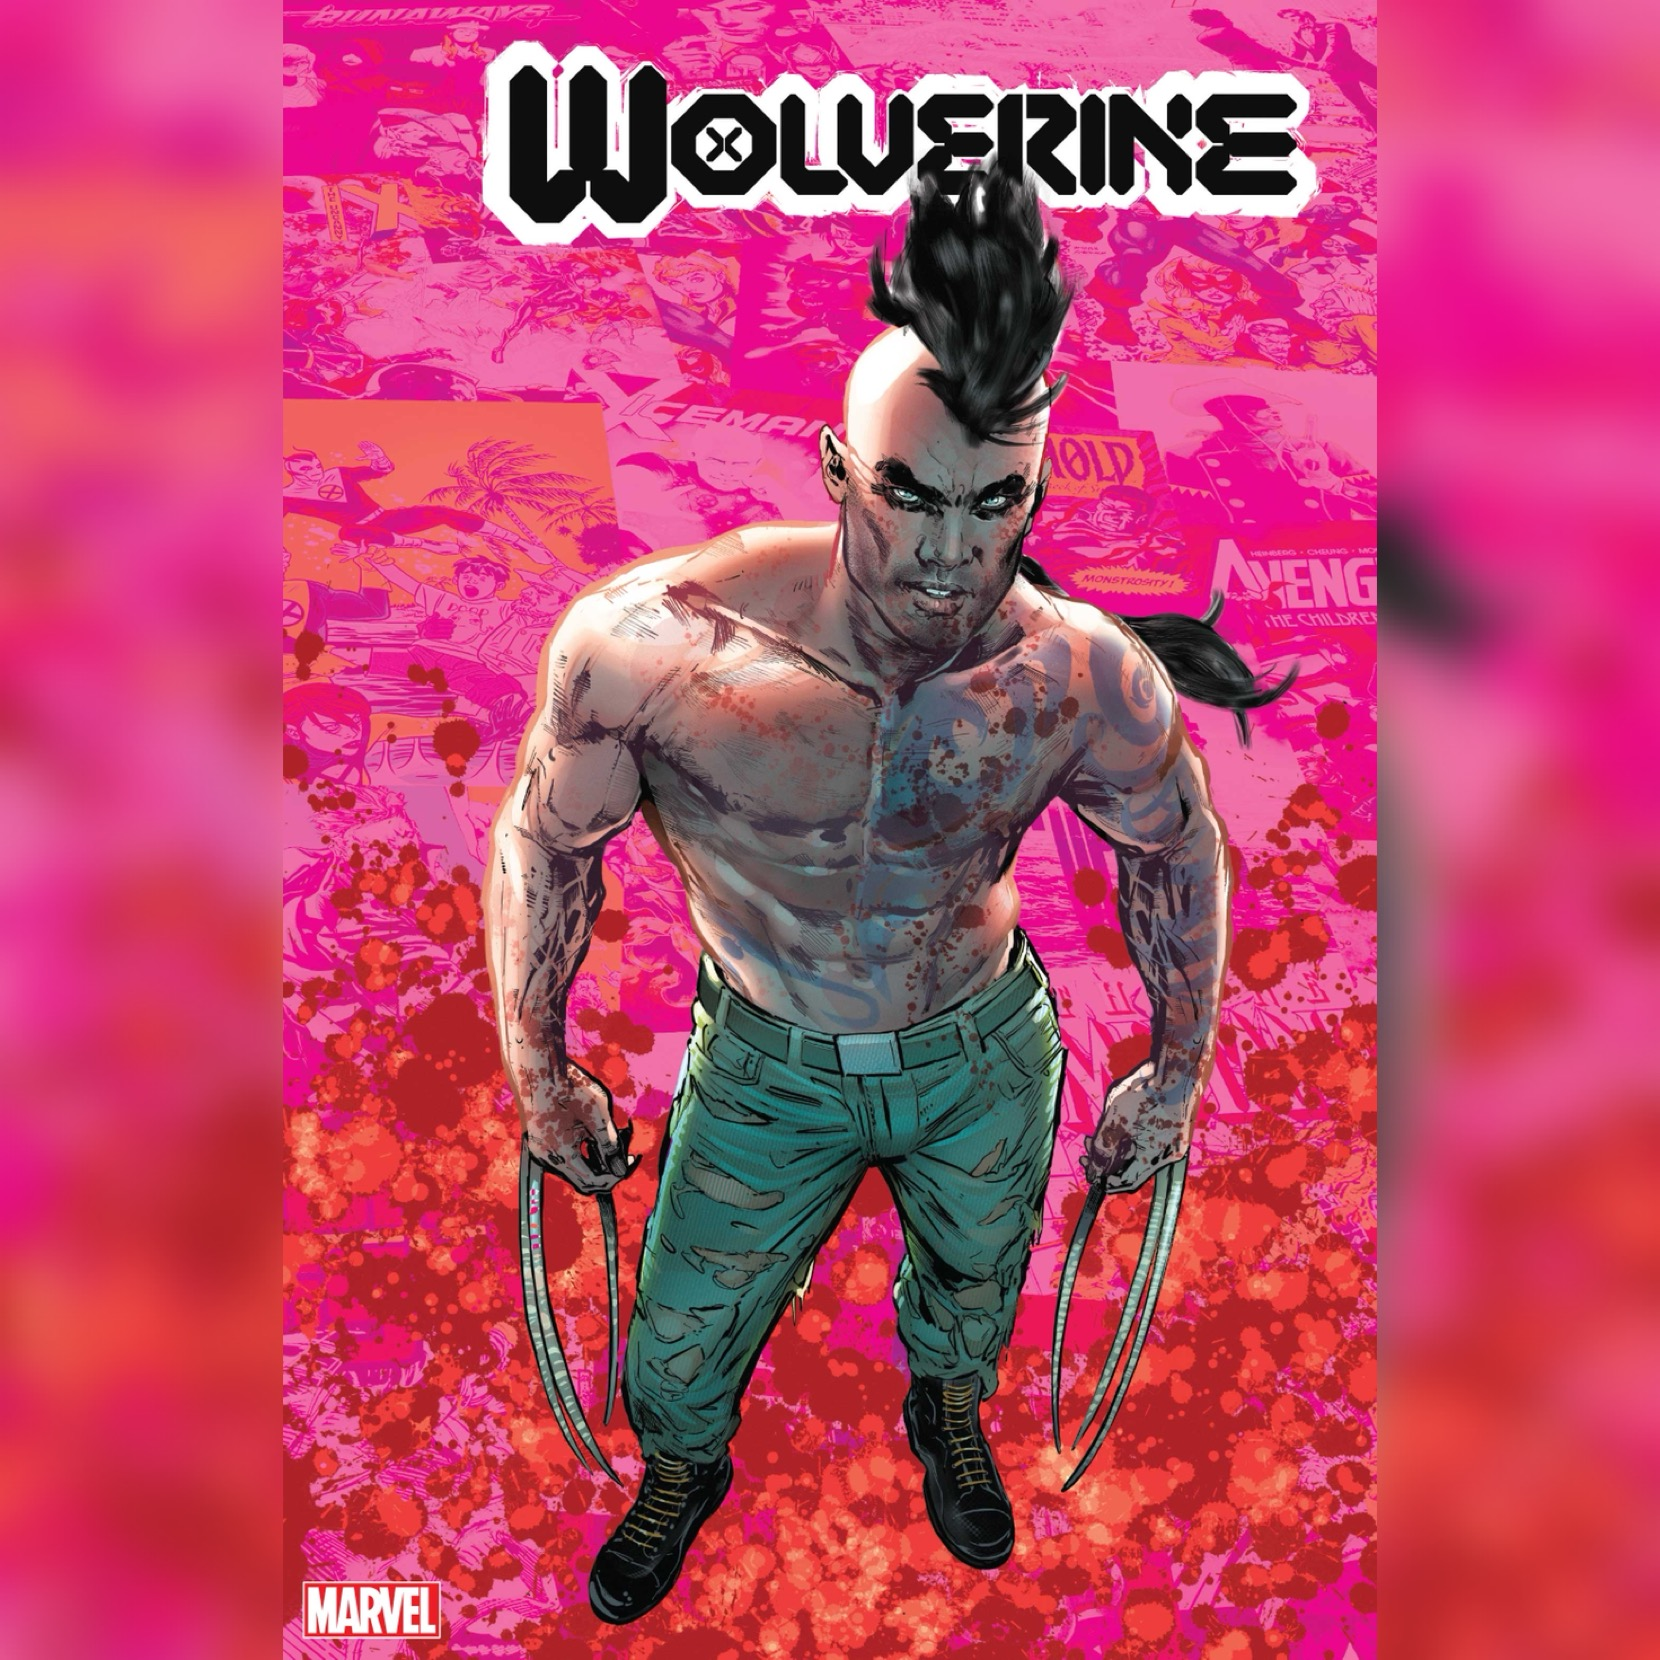 Wolverine Variant Cover provided by Marvel for use by 360 Magazine